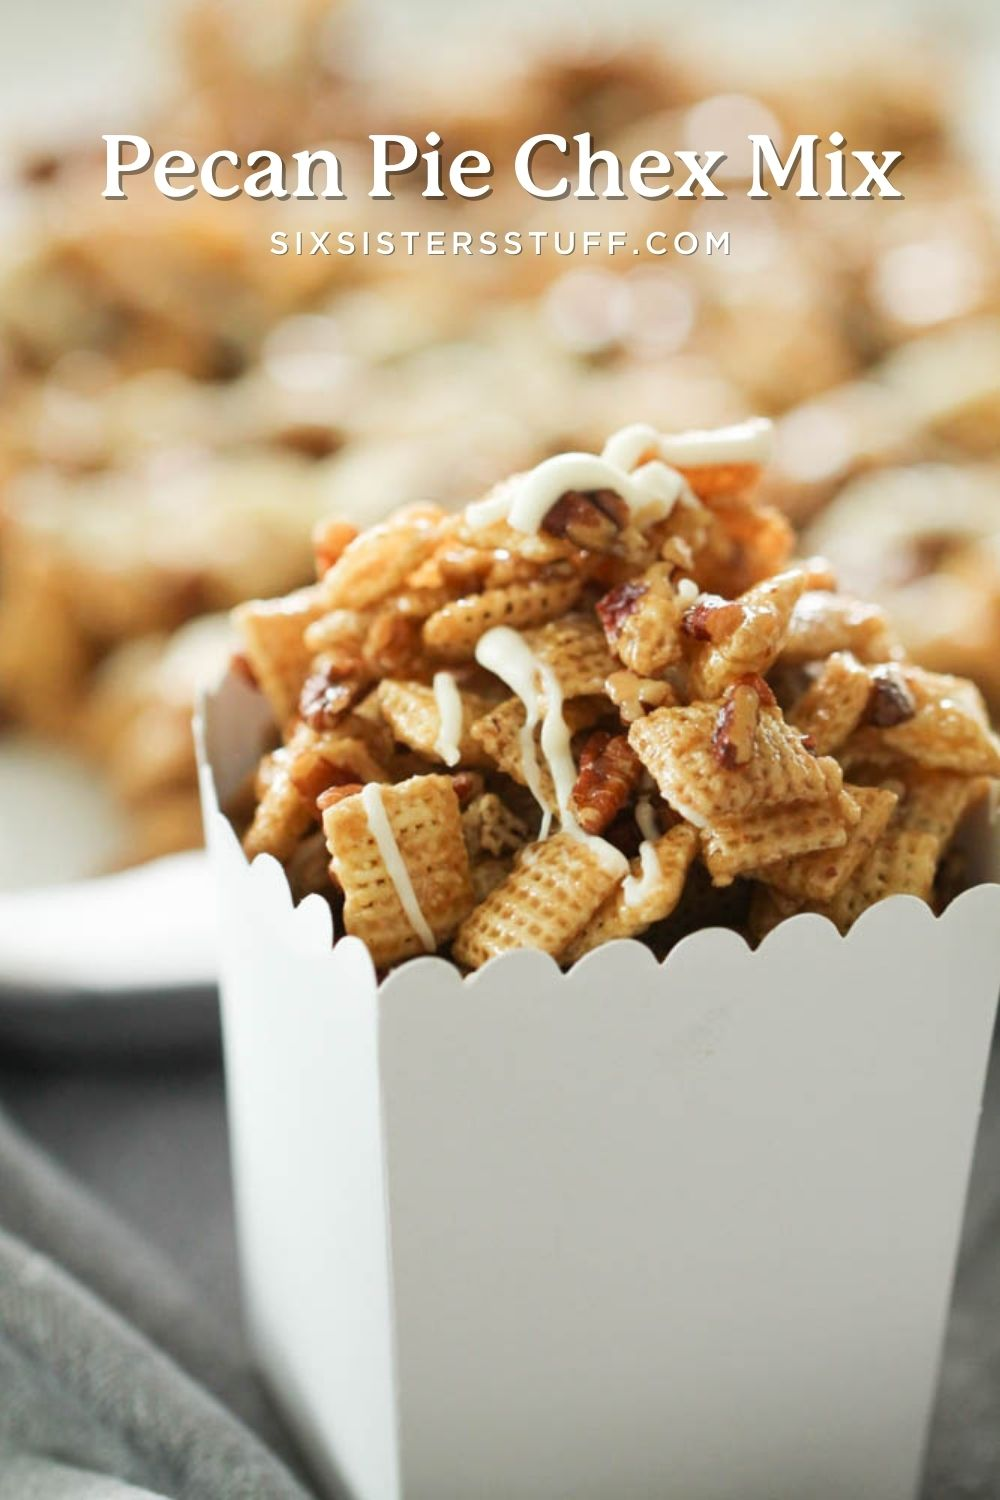 pecan pie chex mix in a white serving container